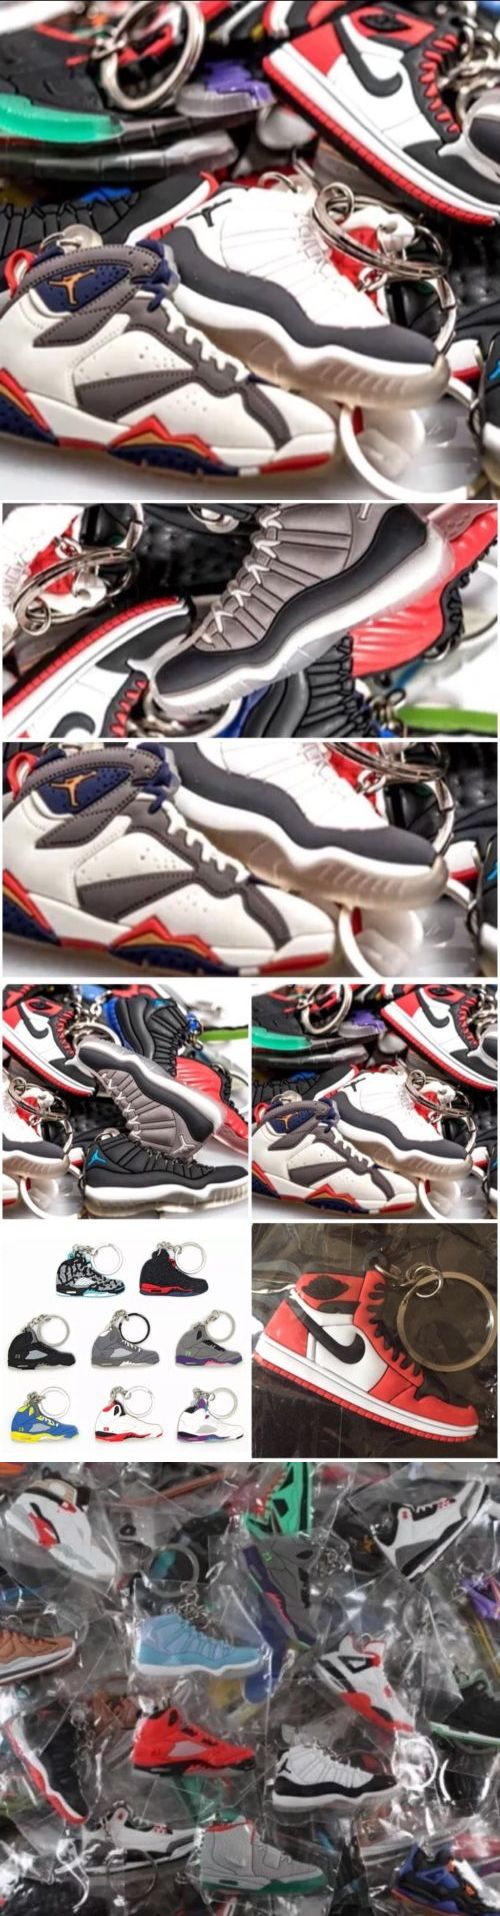 Key Chains Rings and Cases 52373: 100 Air Jordan, Yeezy, Lebron, Durant, Misc. Shoe Keychains - Random Pick By Us -> BUY IT NOW ONLY: $89.99 on eBay!